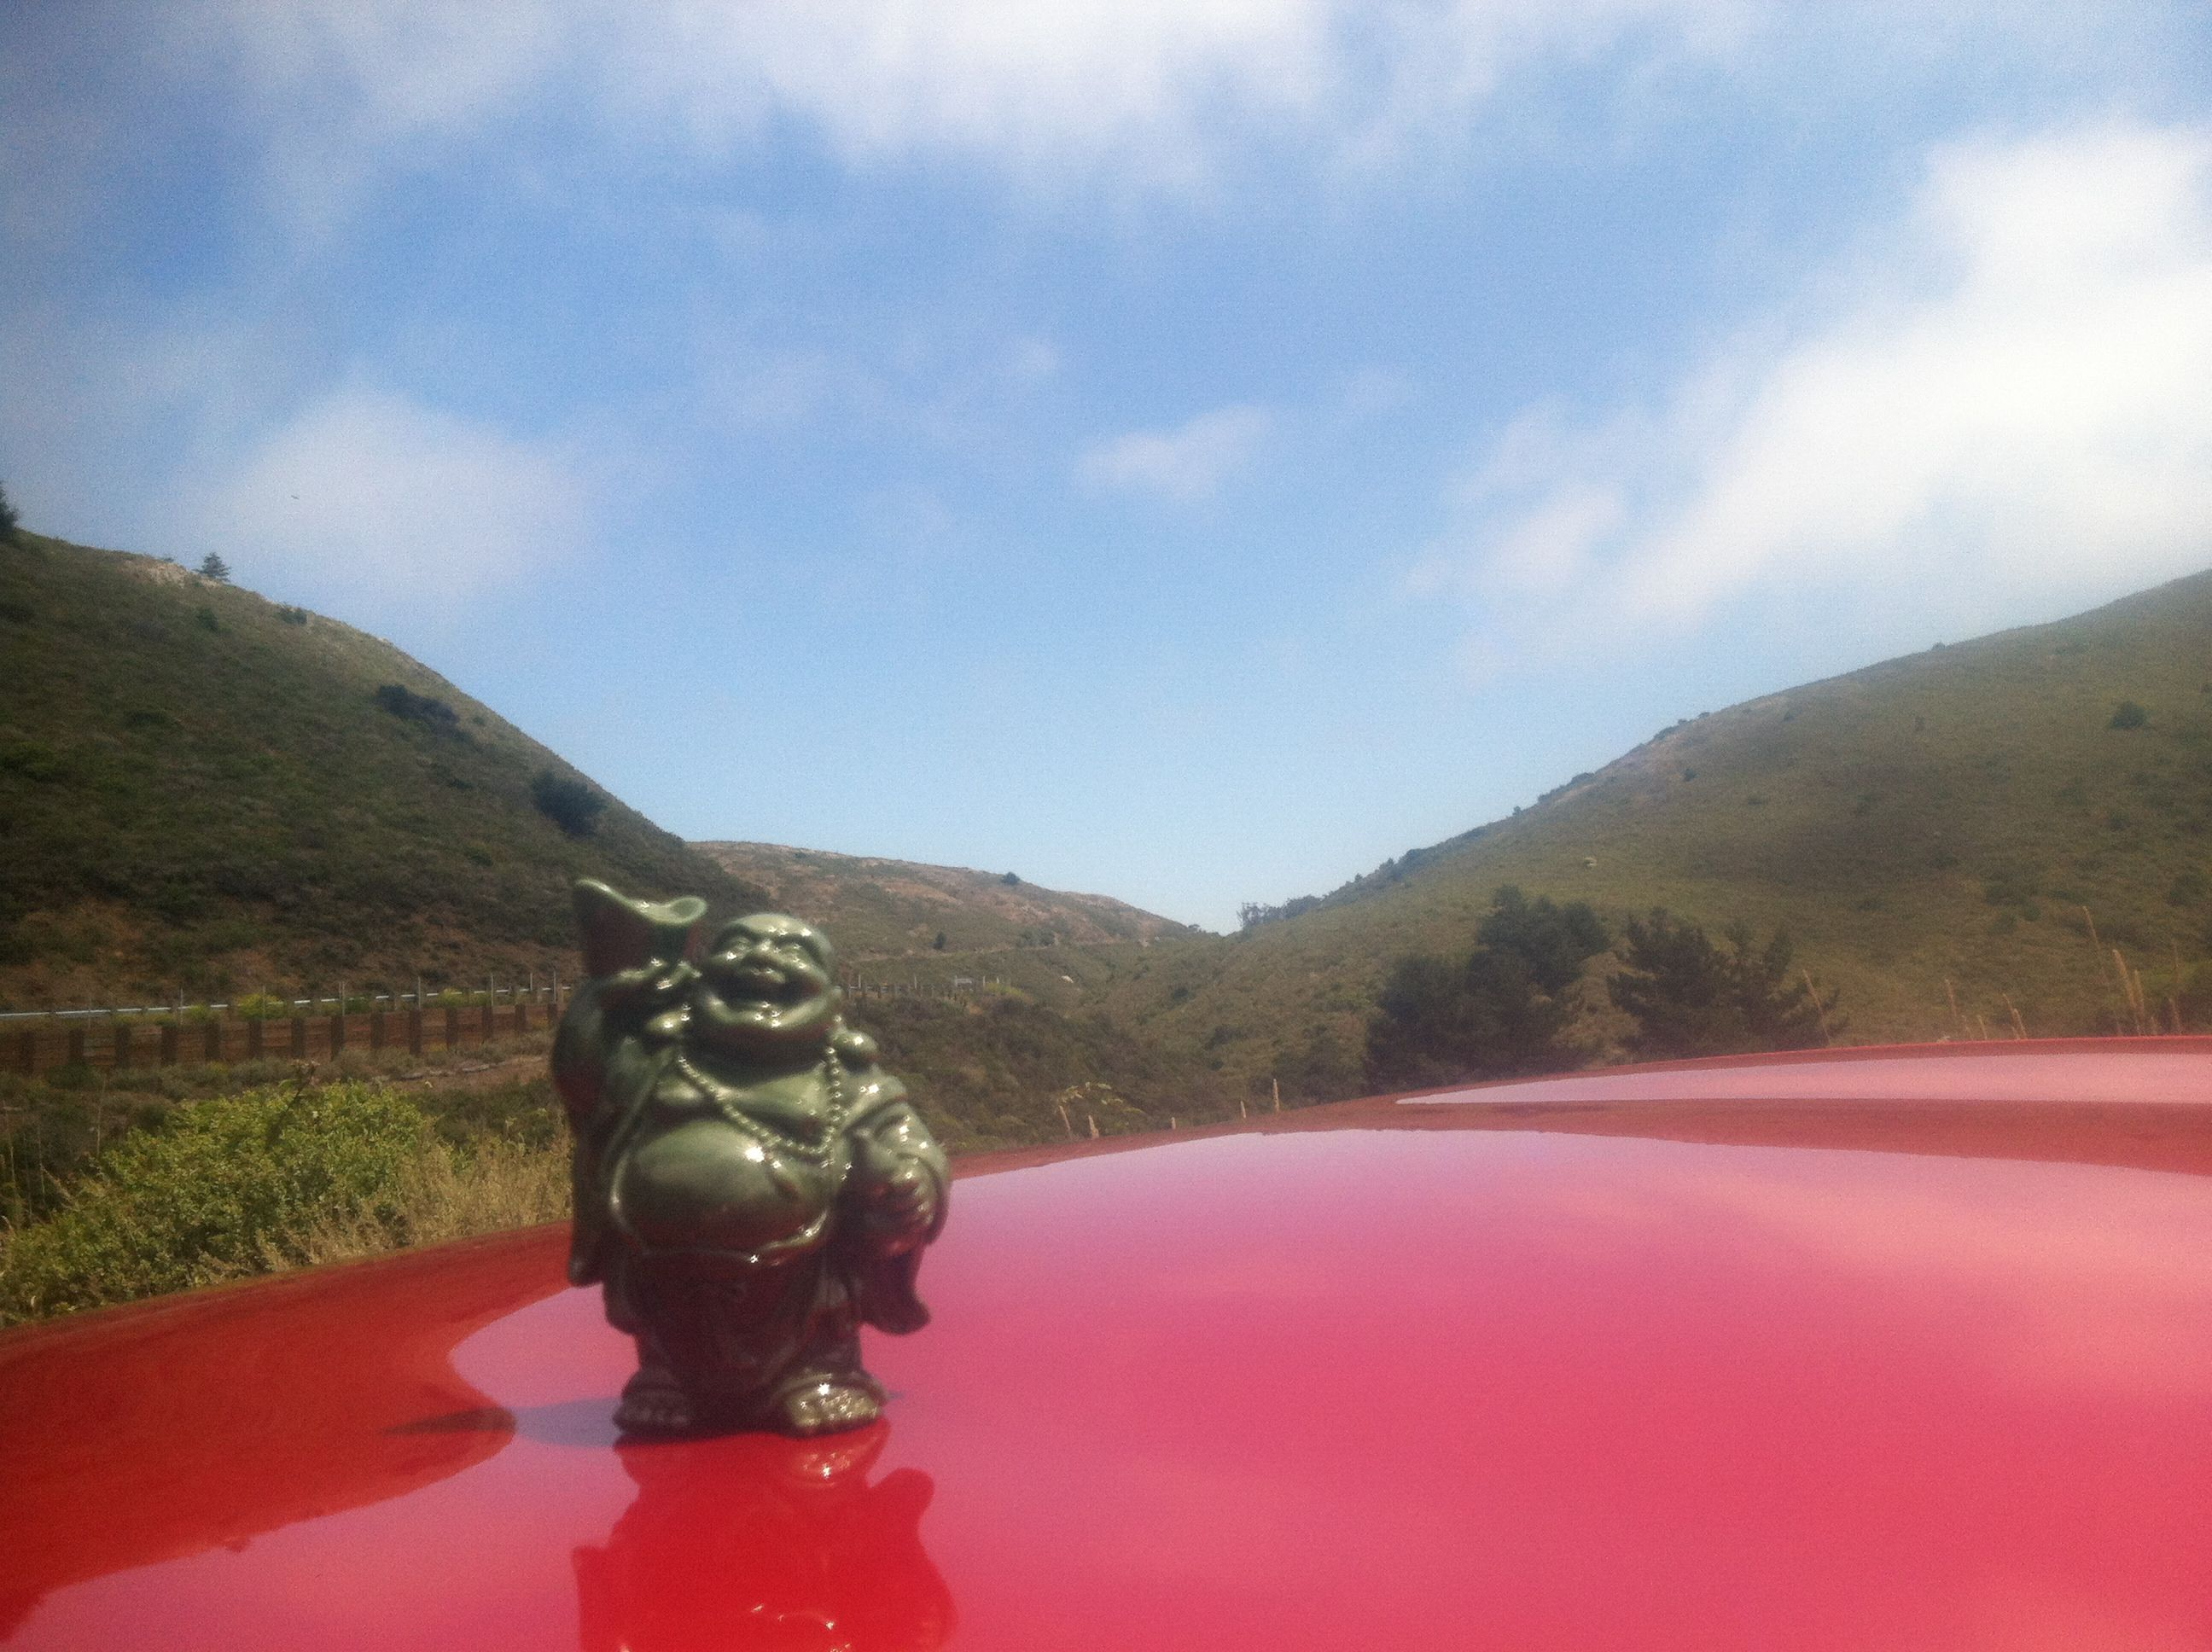 A traveling Buddah.   Take a small item that is special to you and take a picture with it where you go!